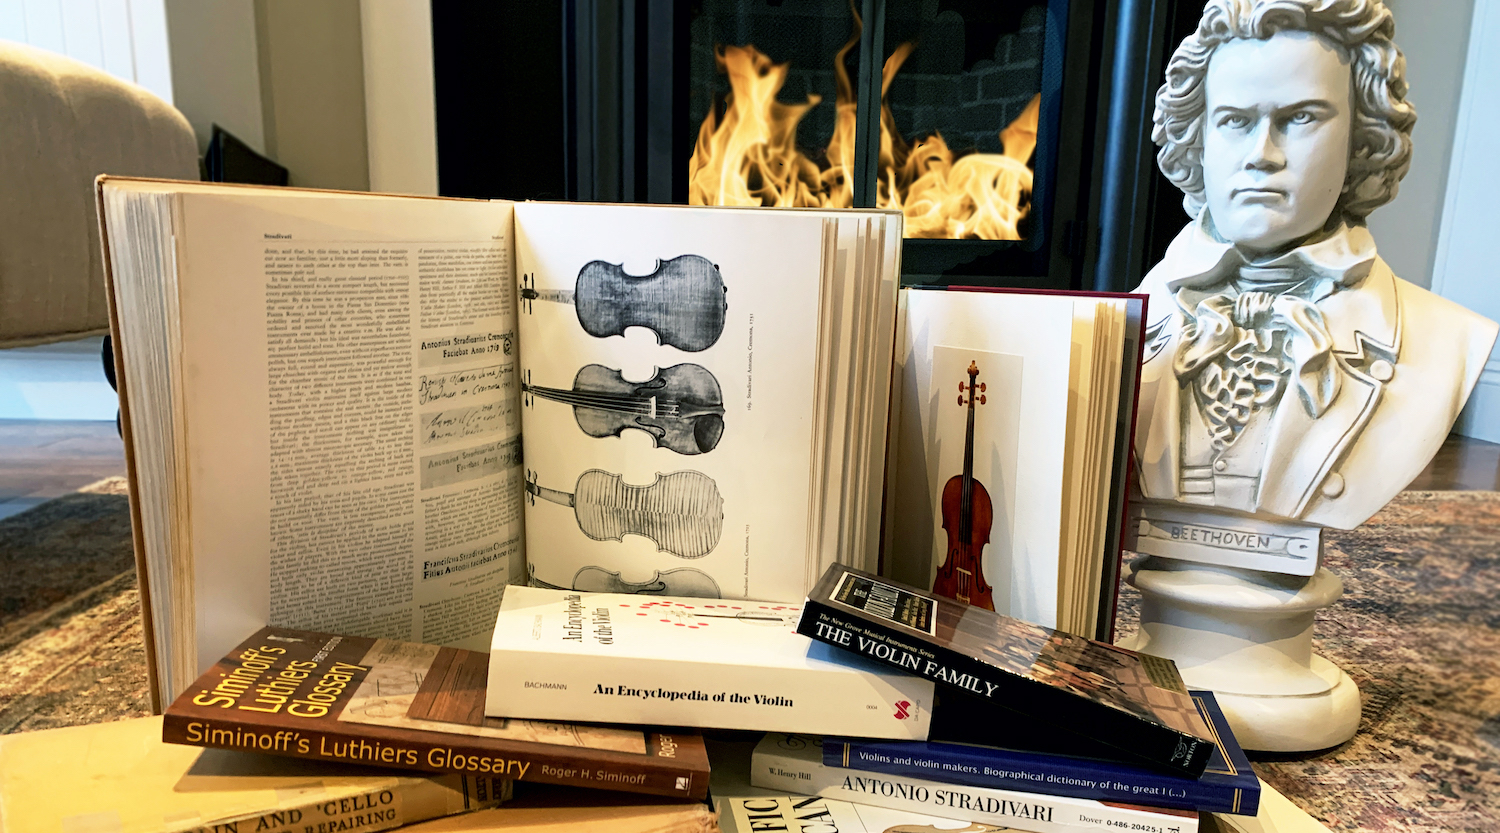 stack of books and Beethoven bust in front of a fireplace